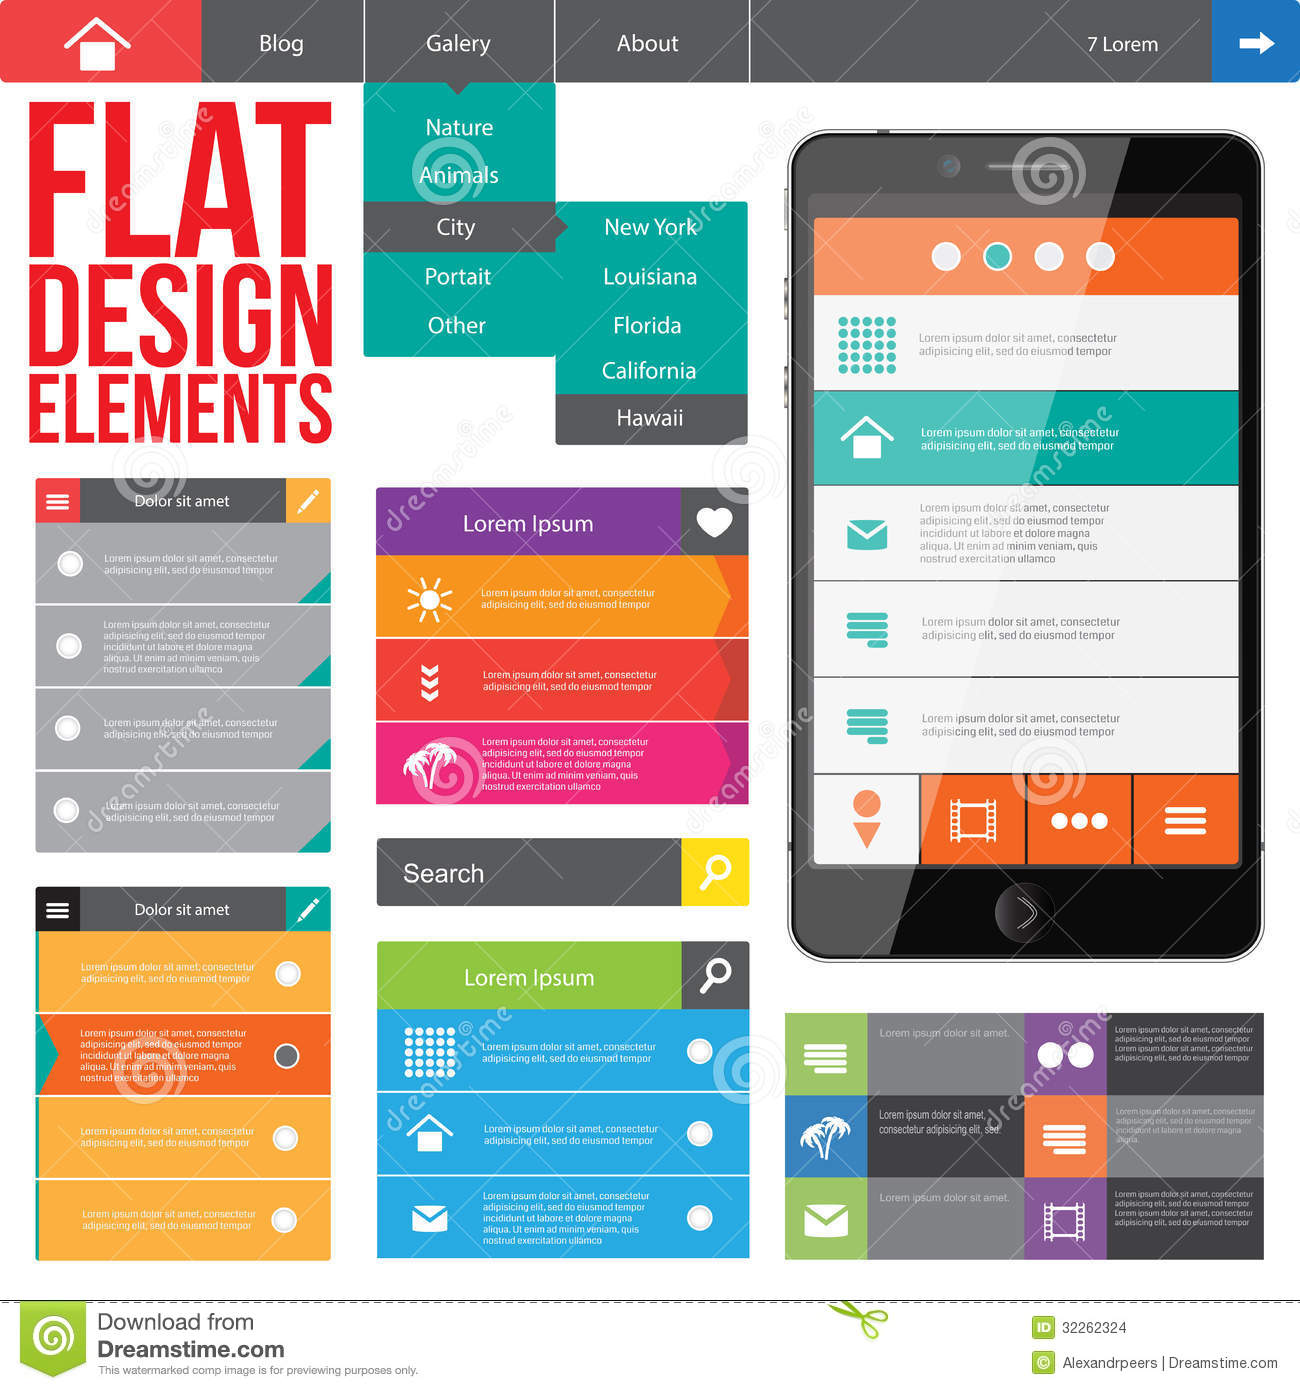 11 Flat Design Elements Images